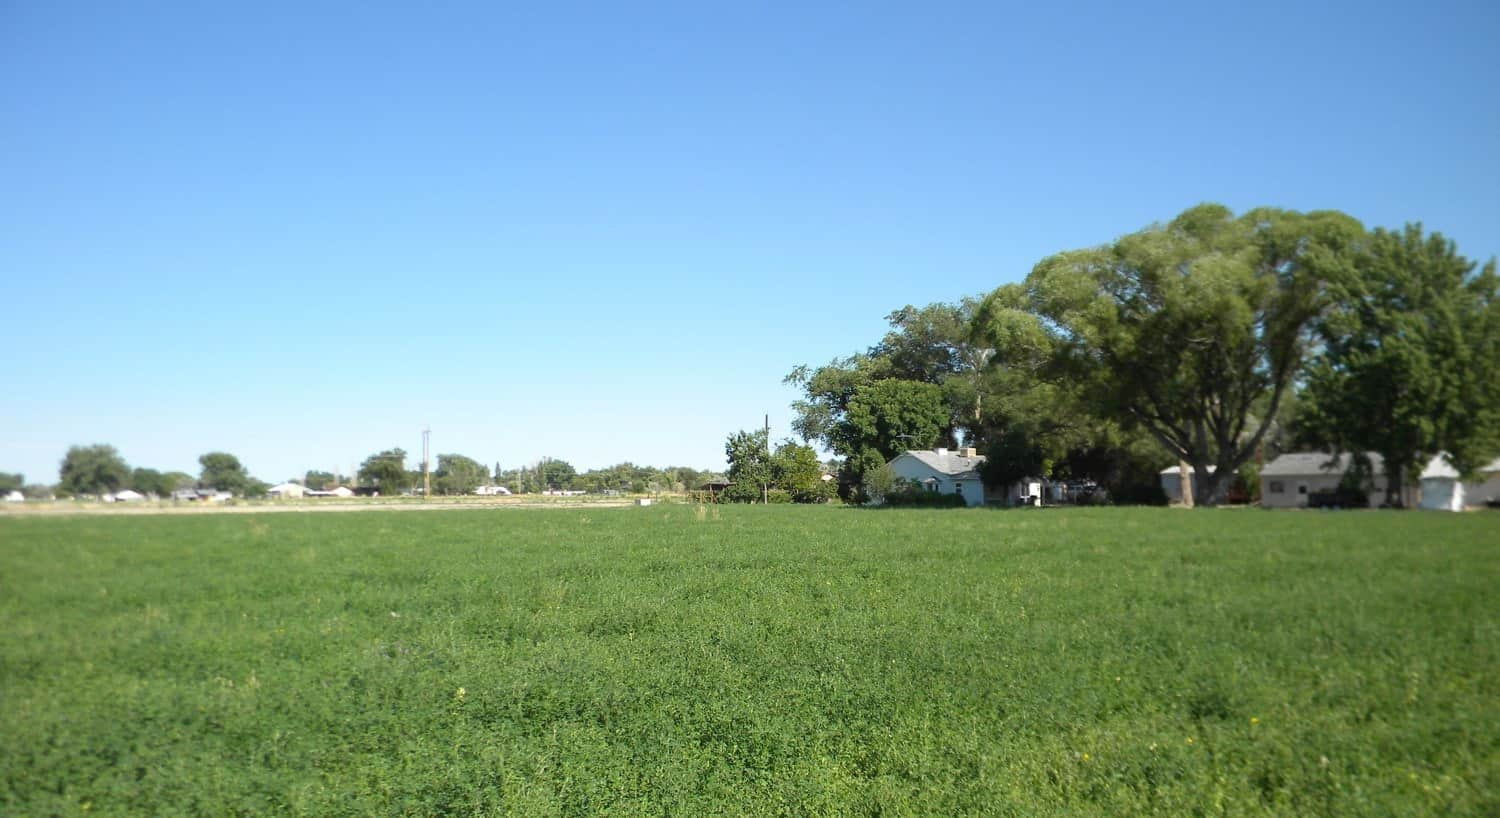 Green field with homes, buildings, and green trees in the background